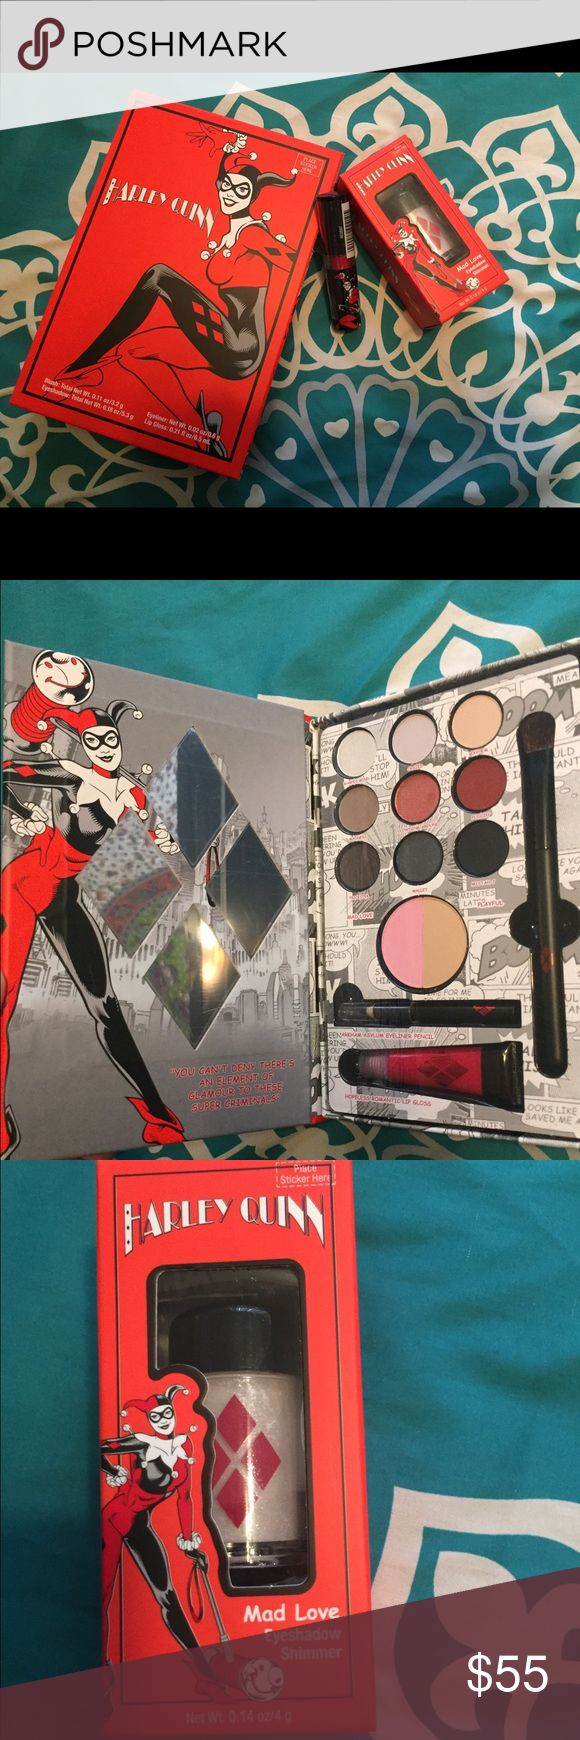 "Limited edition Harley Quinn collection DC Comics Harley Quinn 1. palette with 9 eyeshadows, blush/bronzer duo, brush, eyeliner, and lipgloss 2. Eyeshadow shimmer in ""Mad Love"" 3. Lipstick in ""HarleQuin Red"" all three together for $55. palette alone $38, shadow alone $12.95, and lipstick for $12.95 Makeup SO COOL"